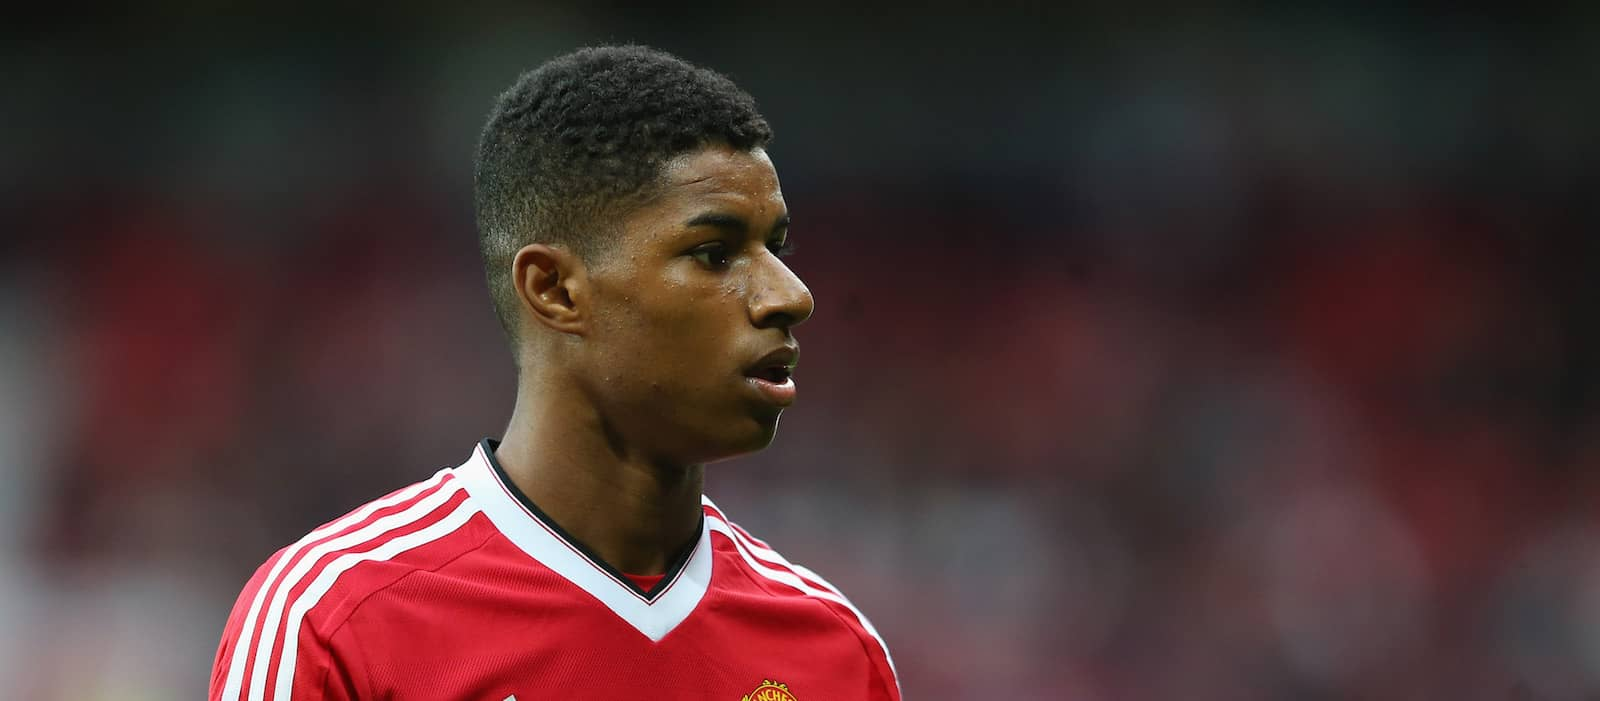 Marcus Rashford signs lucrative new Manchester United contract – report